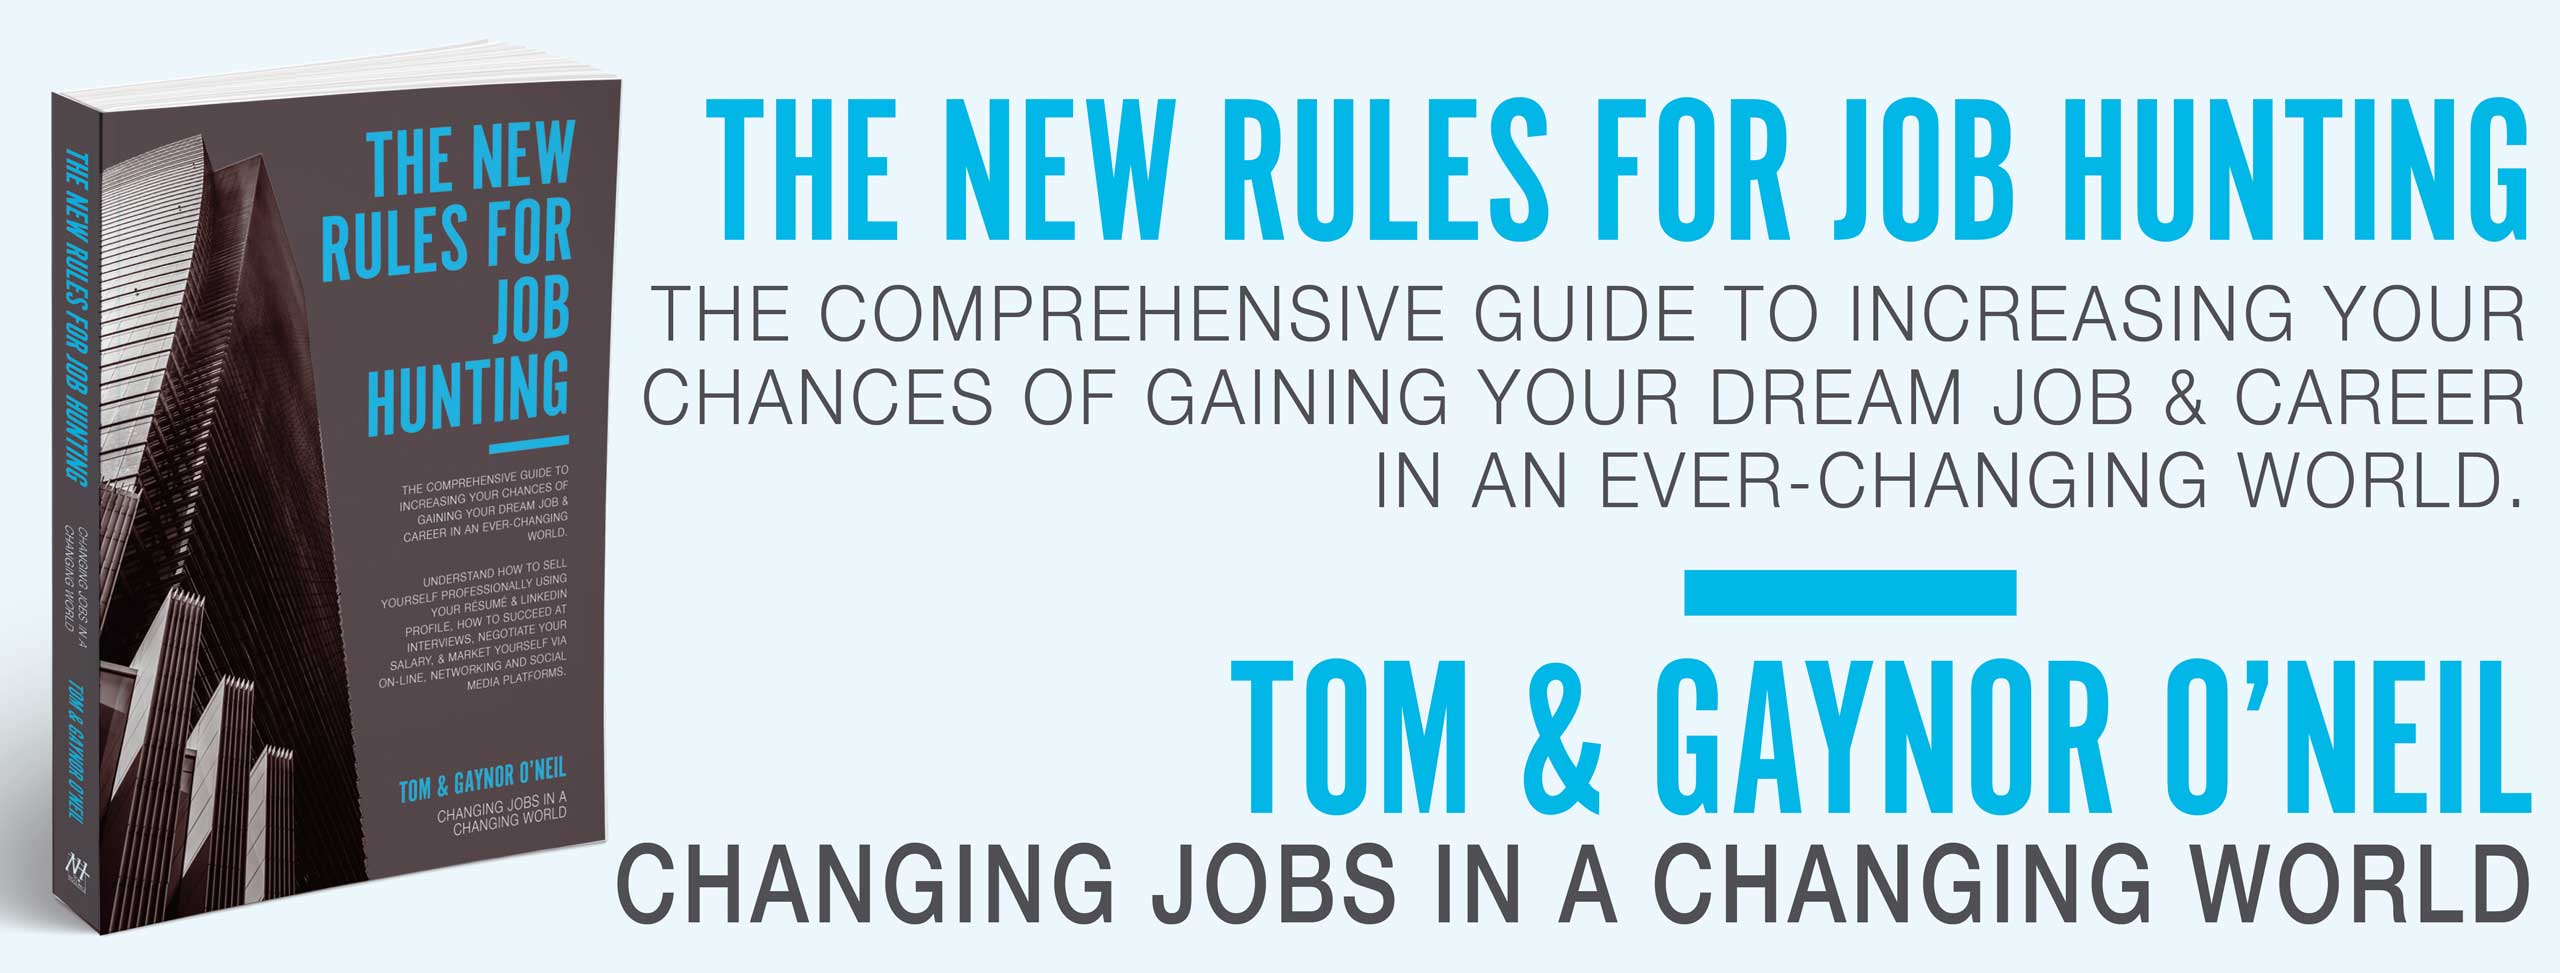 The New Rules for Job Hunting